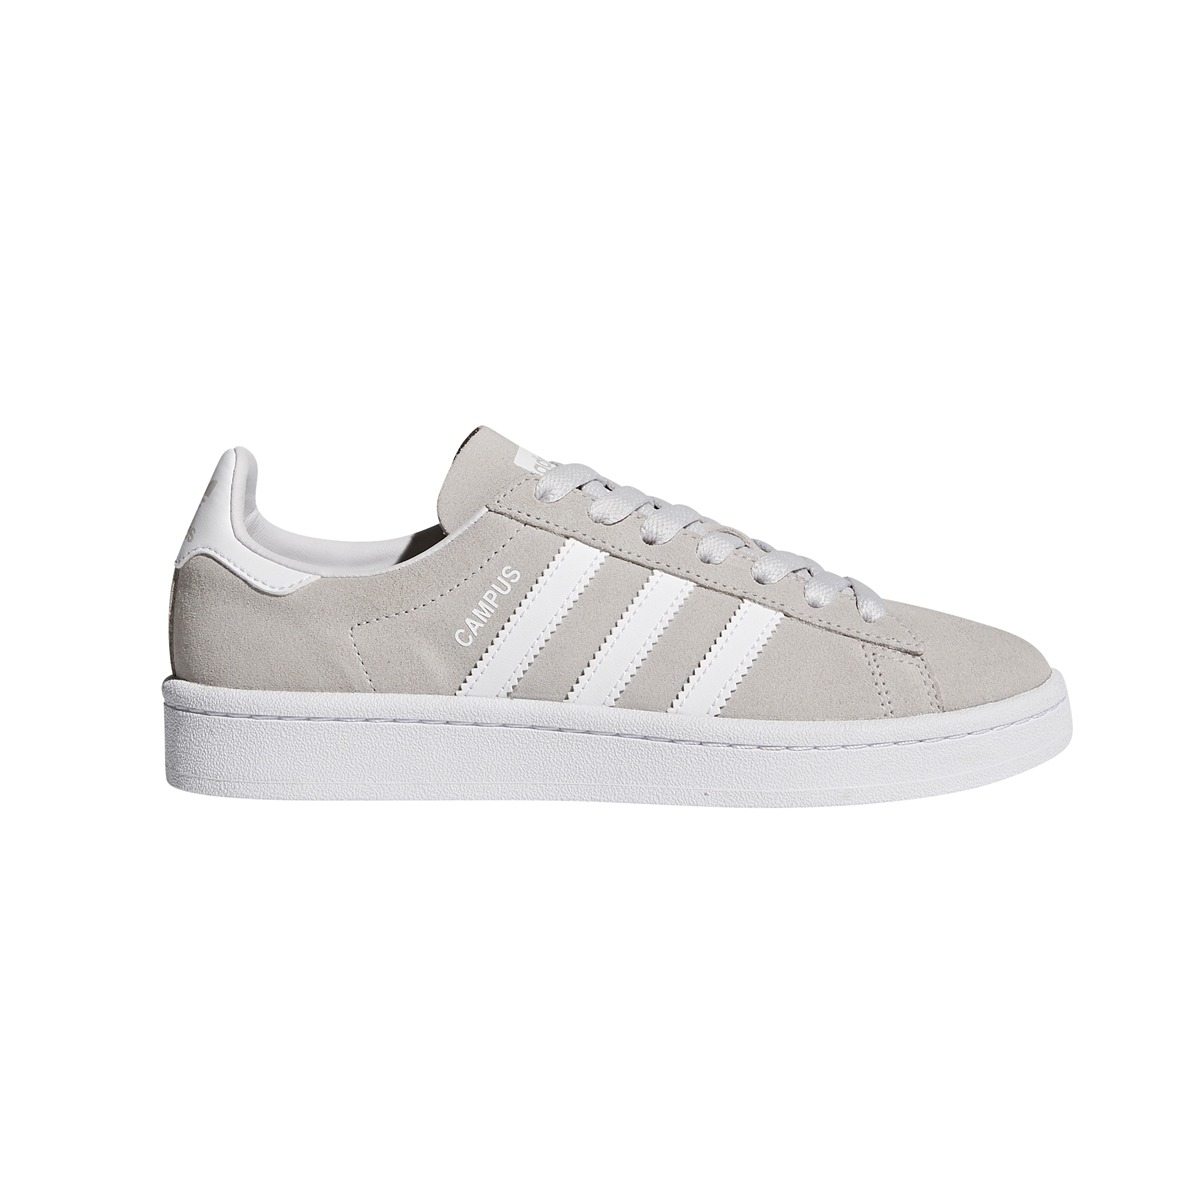 huge discount 98bcc 079ec zapatillas adidas originals moda campus j bebl. Cargando zoom.